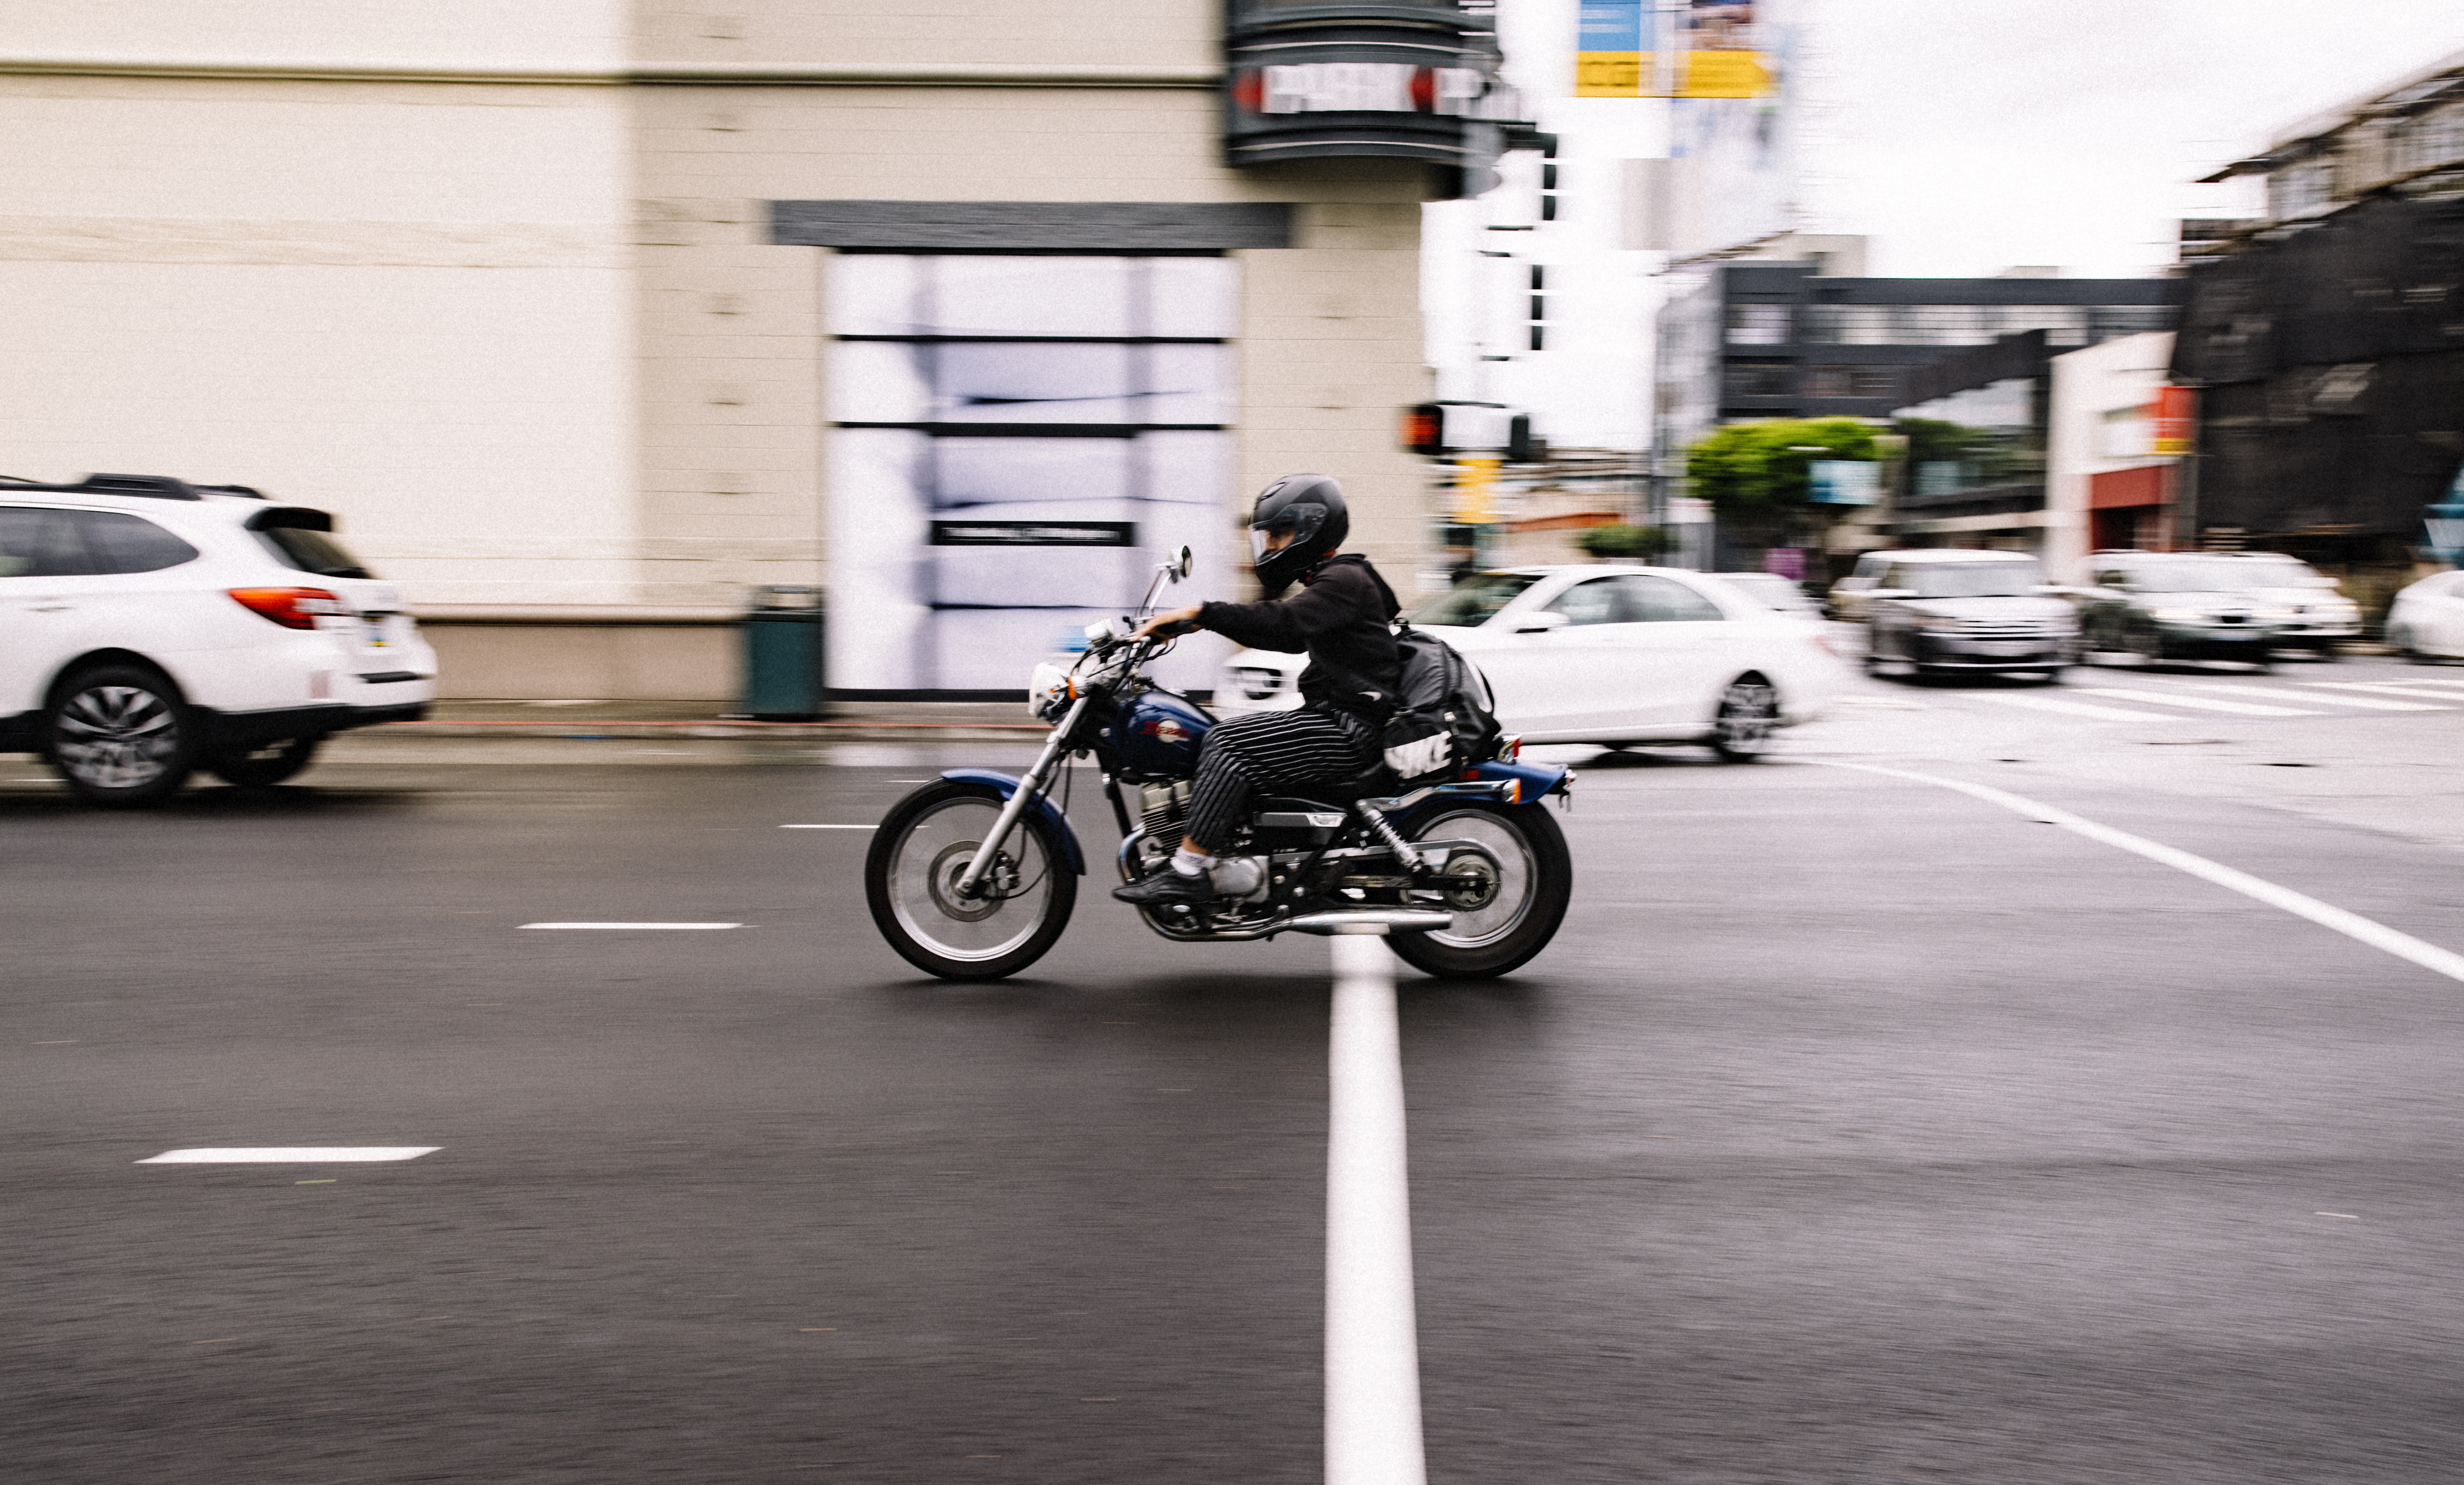 motorcyclist and passenger vehicle accident laws and insurance answers